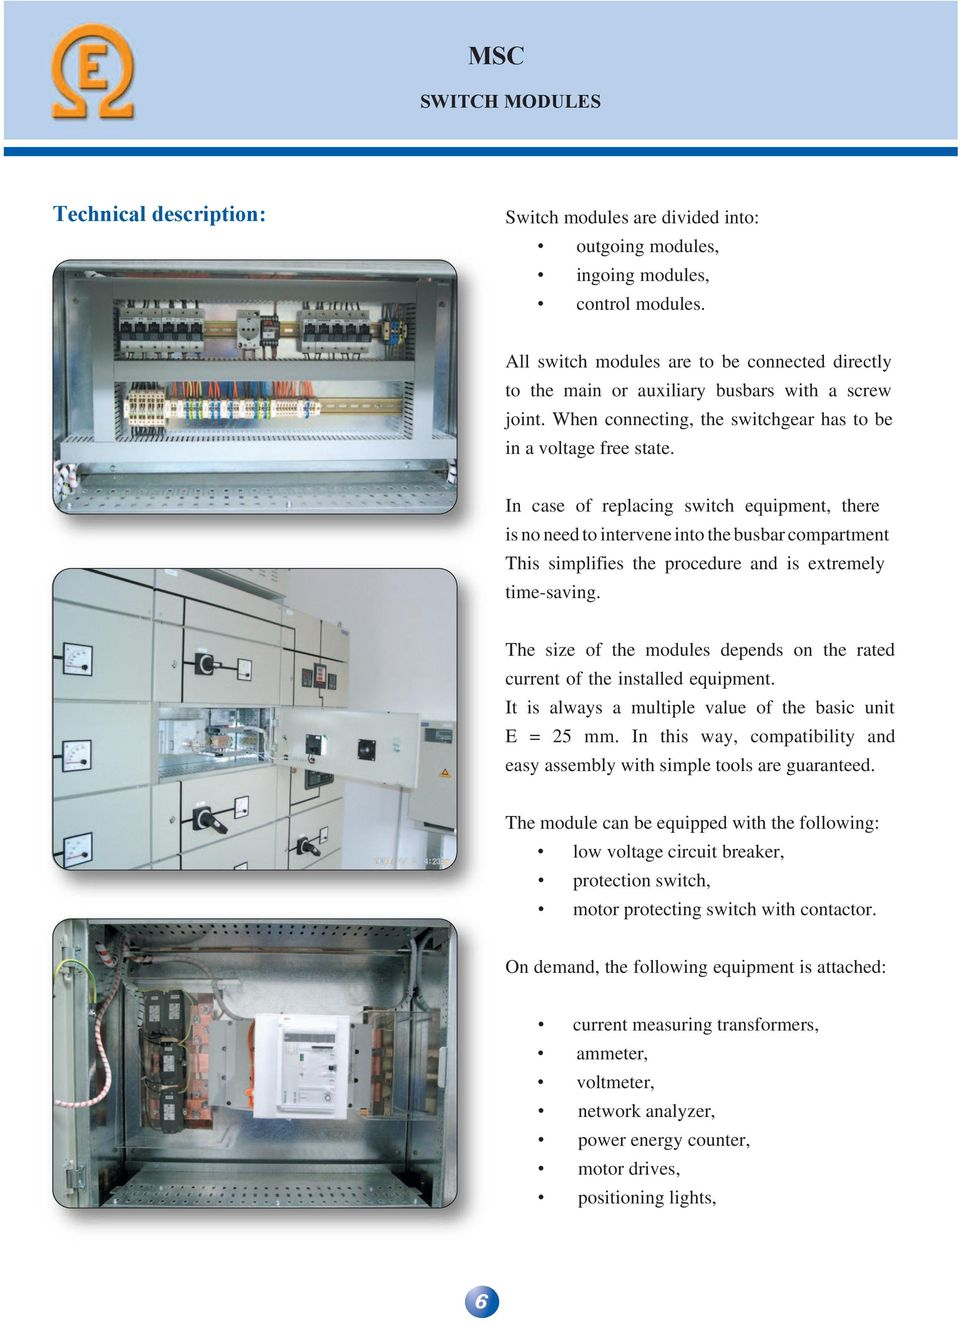 In case of replacing switch equipment, there is no need to intervene into the busbar compartment This simplifies the procedure and is extremely time-saving.